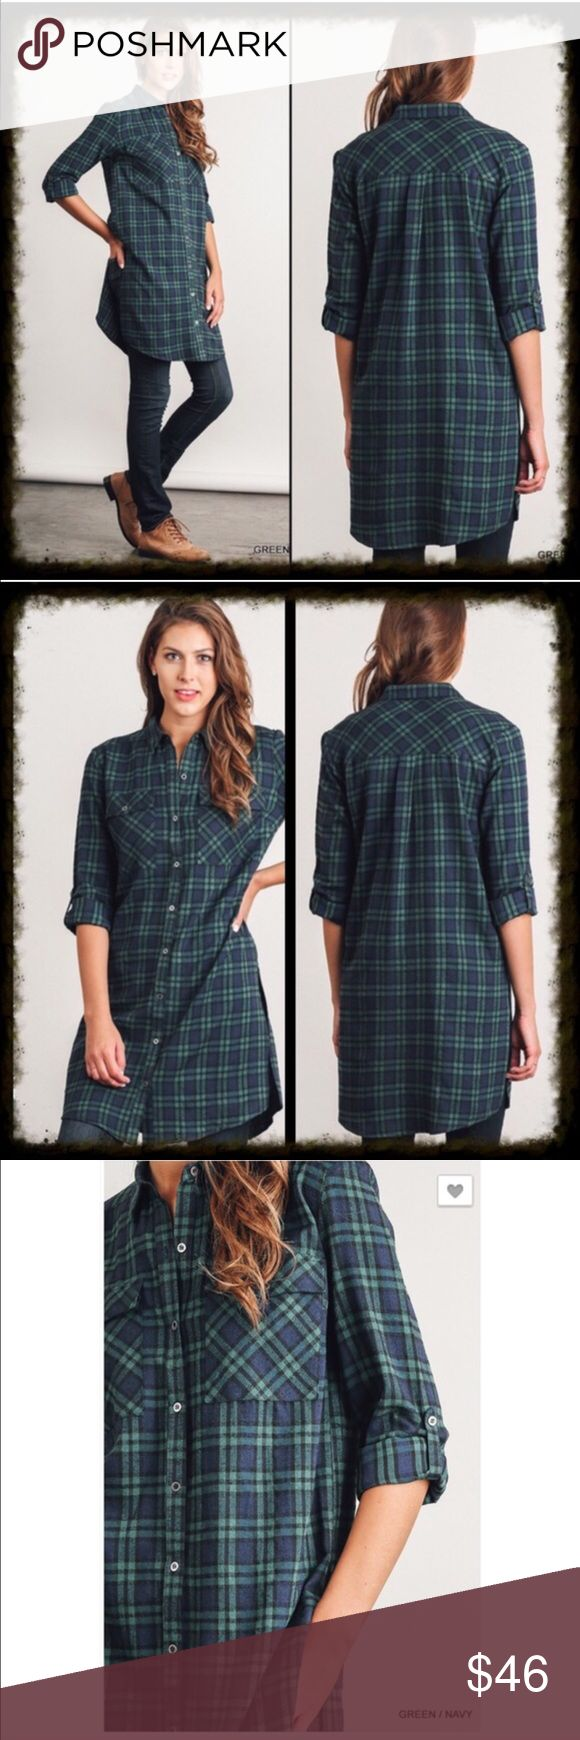 "Button Up Plaid Flannel Tunic with Side Slits Button Up Plaid Flannel Tunic with Side Slits. Sleeves can be unrolled and worn at full length.  60% cotton 40% polyester. Hand wash and hang to dry. Measurements:  Medium armpit to armpit = 20.5"" Length: approximately 38""-39""   🙂 wear it layered as seen in last pics Tops Tunics"